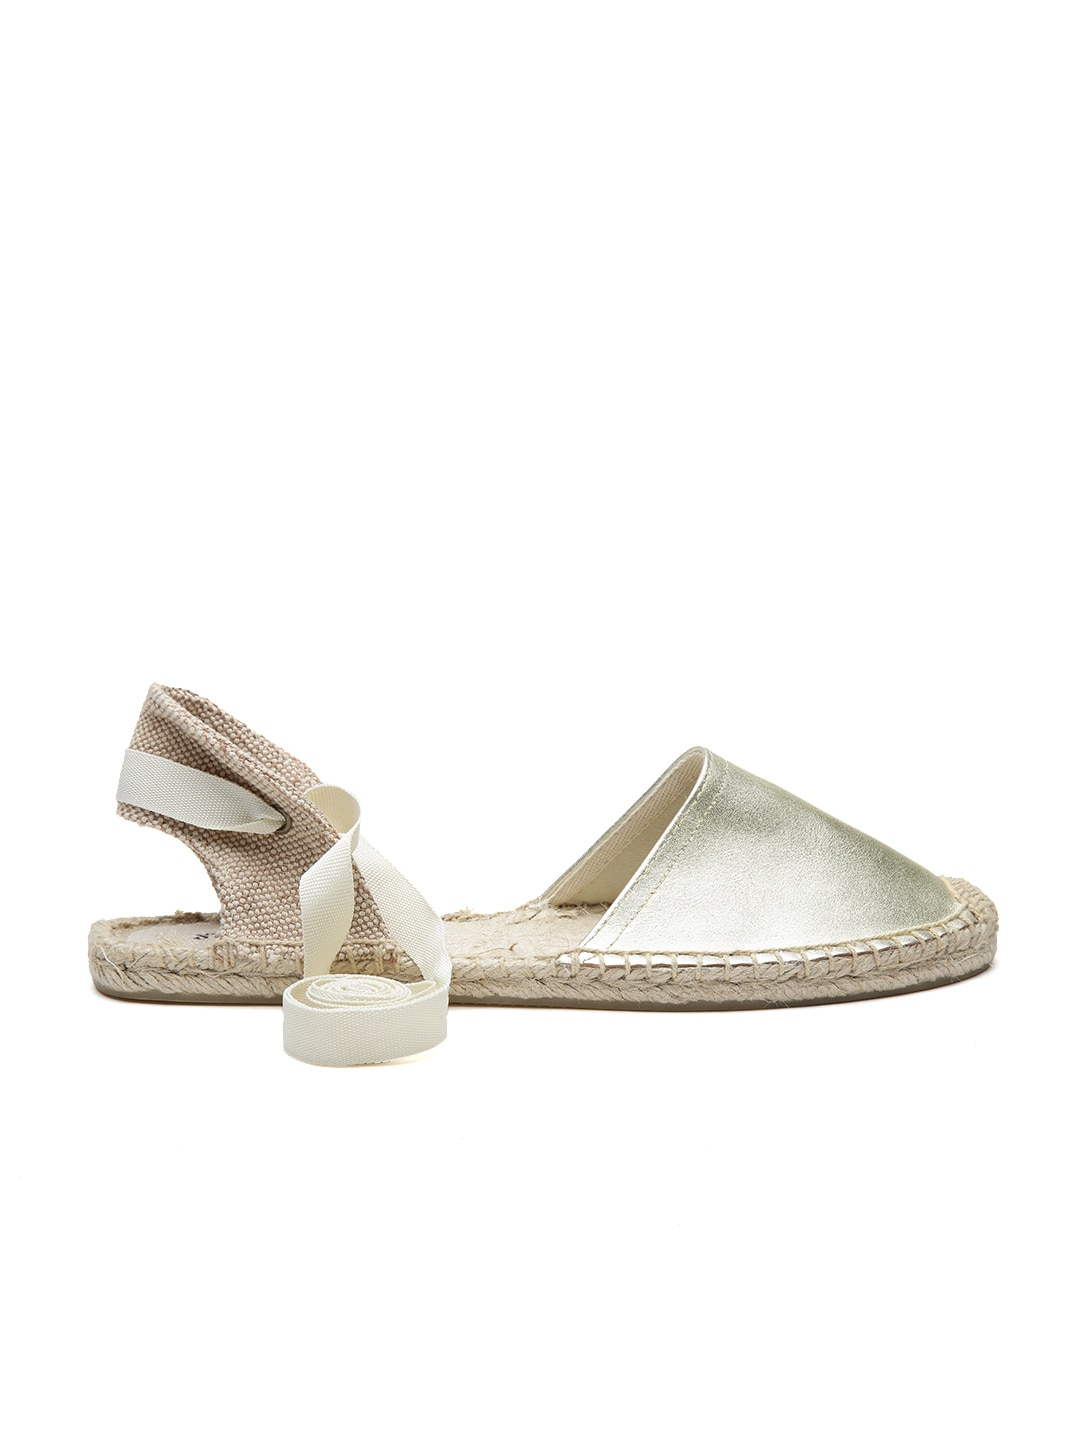 Soludos Women Gold-Toned Leather Espadrilles image